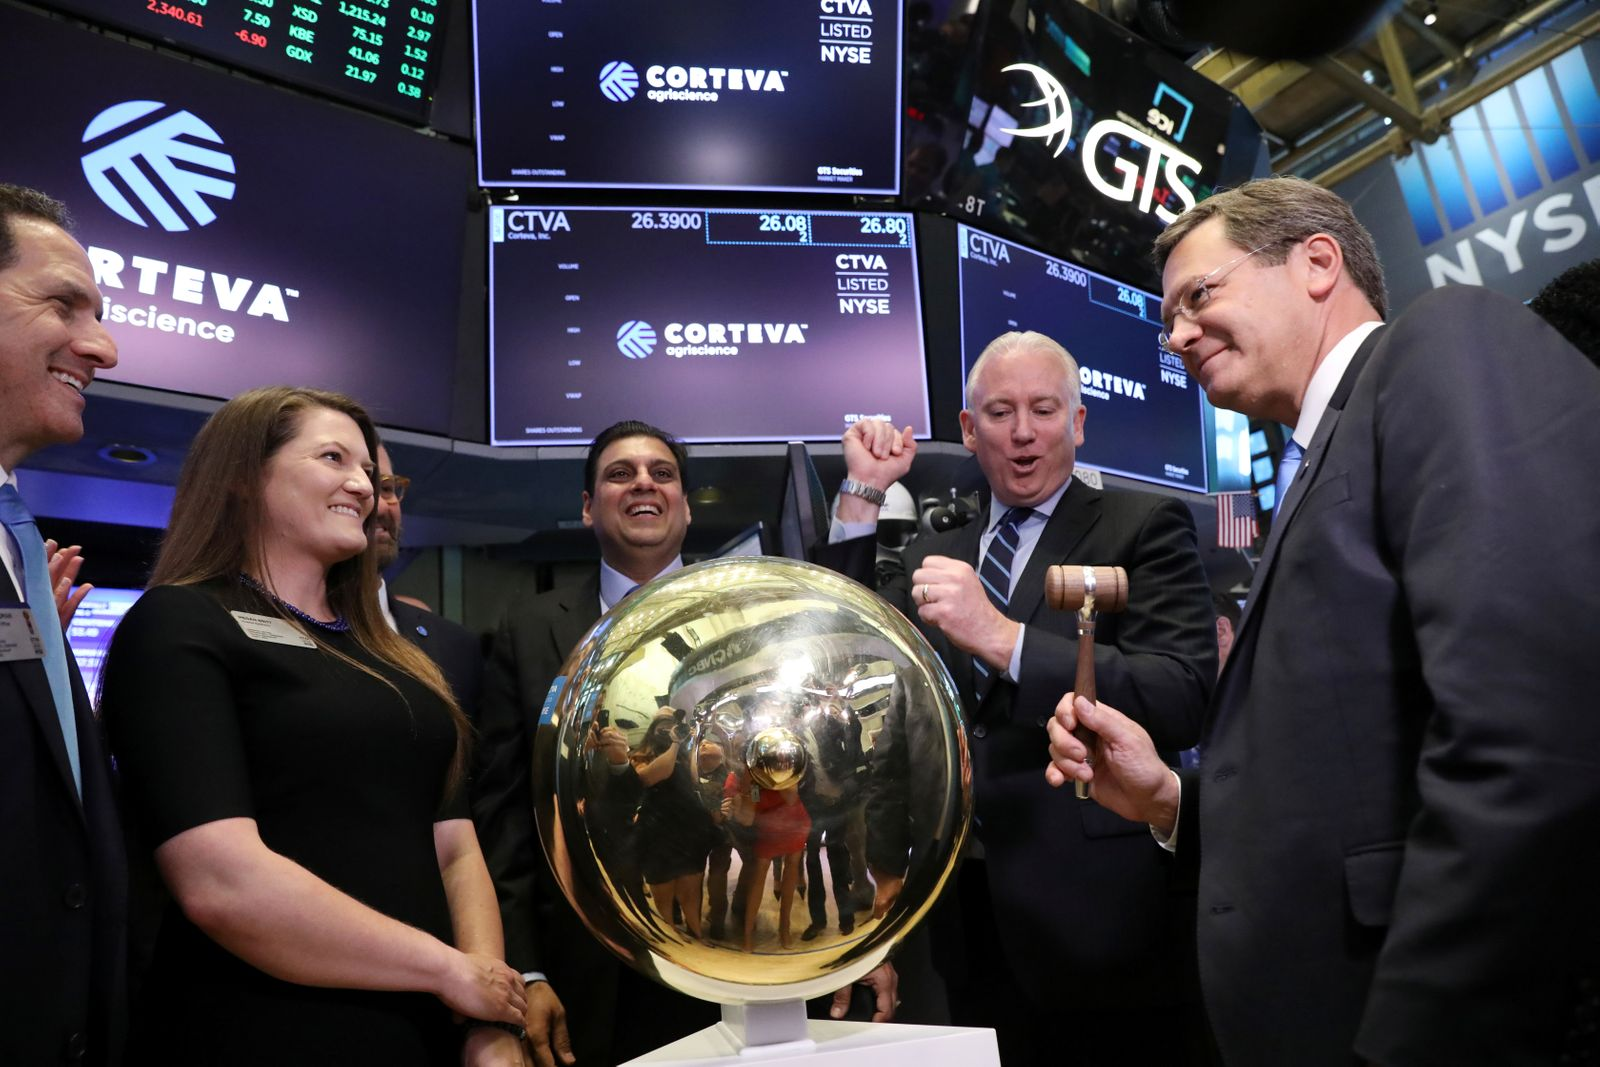 Jim Collins, CEO of Corteva Agriscience, rings a ceremonial bell at the NYSE in New York